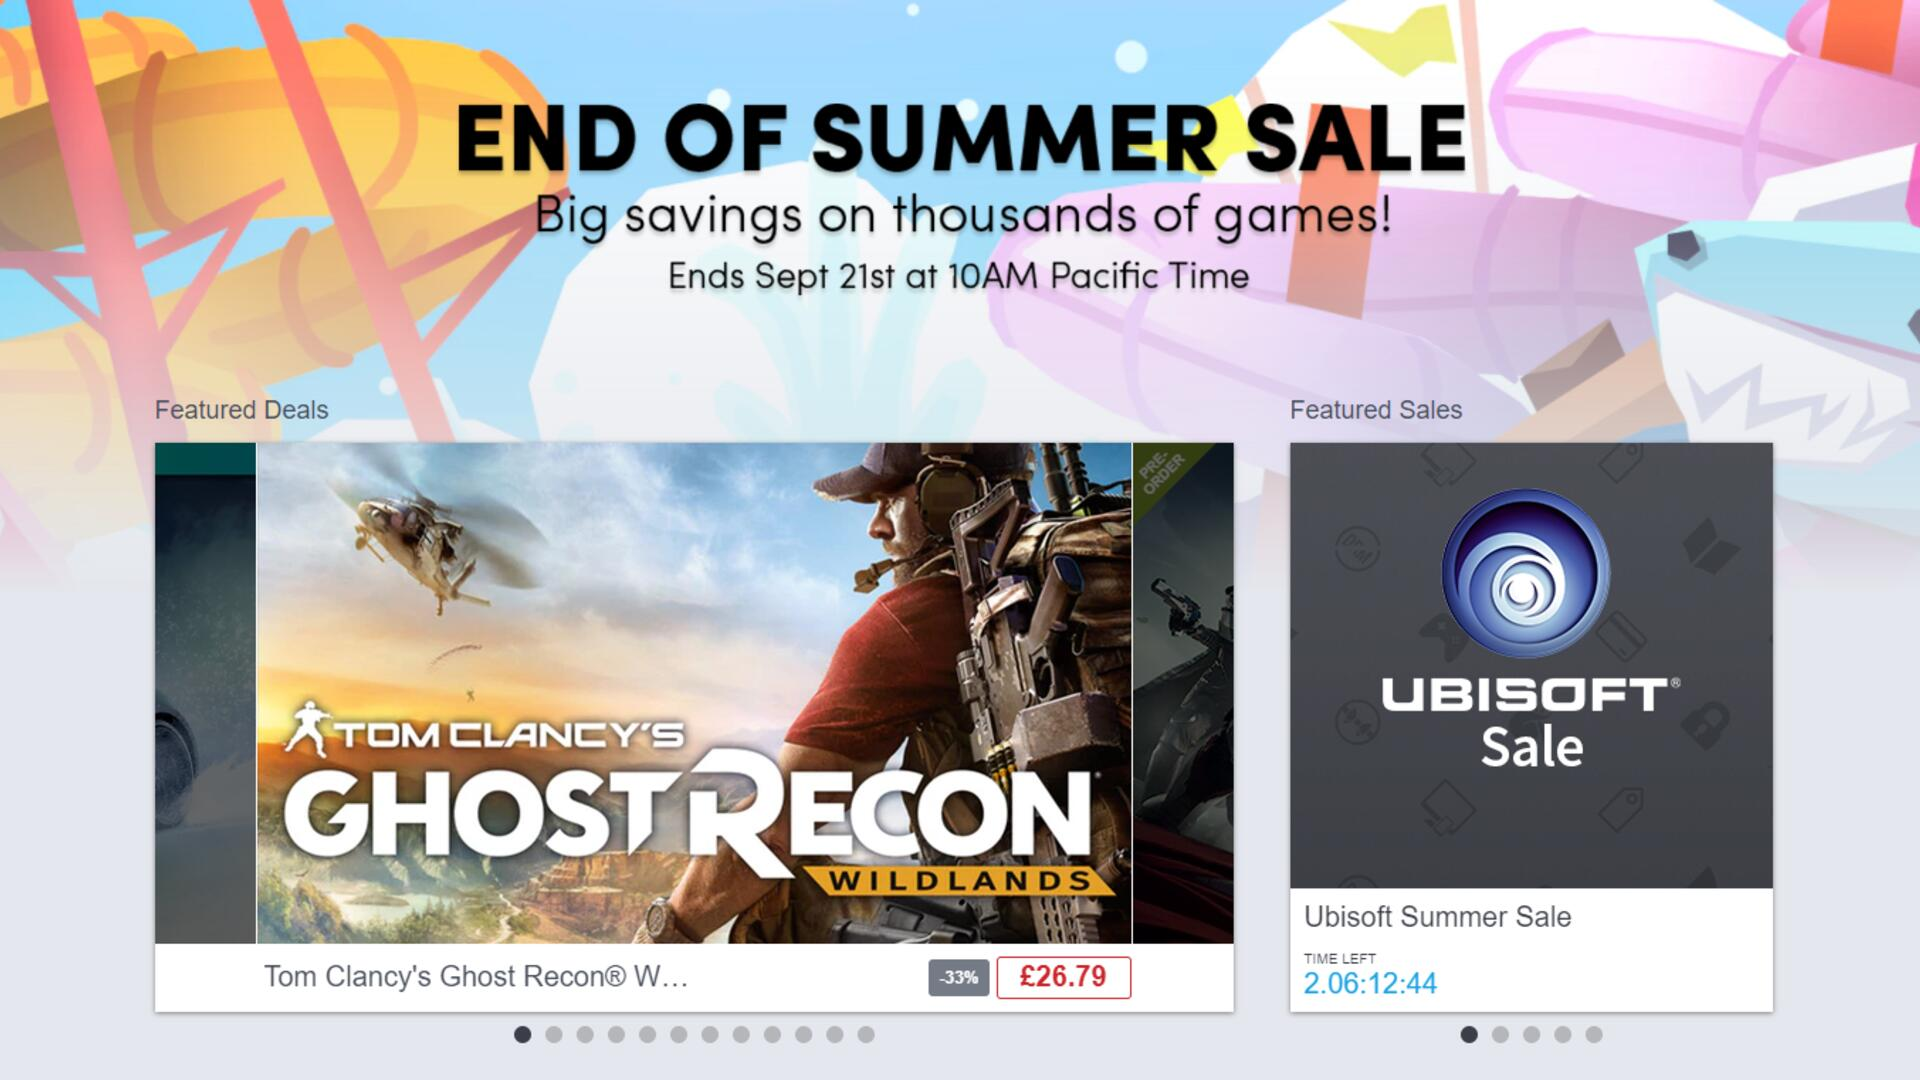 New Games Added to Humble's 'End of Summer Sale' Range